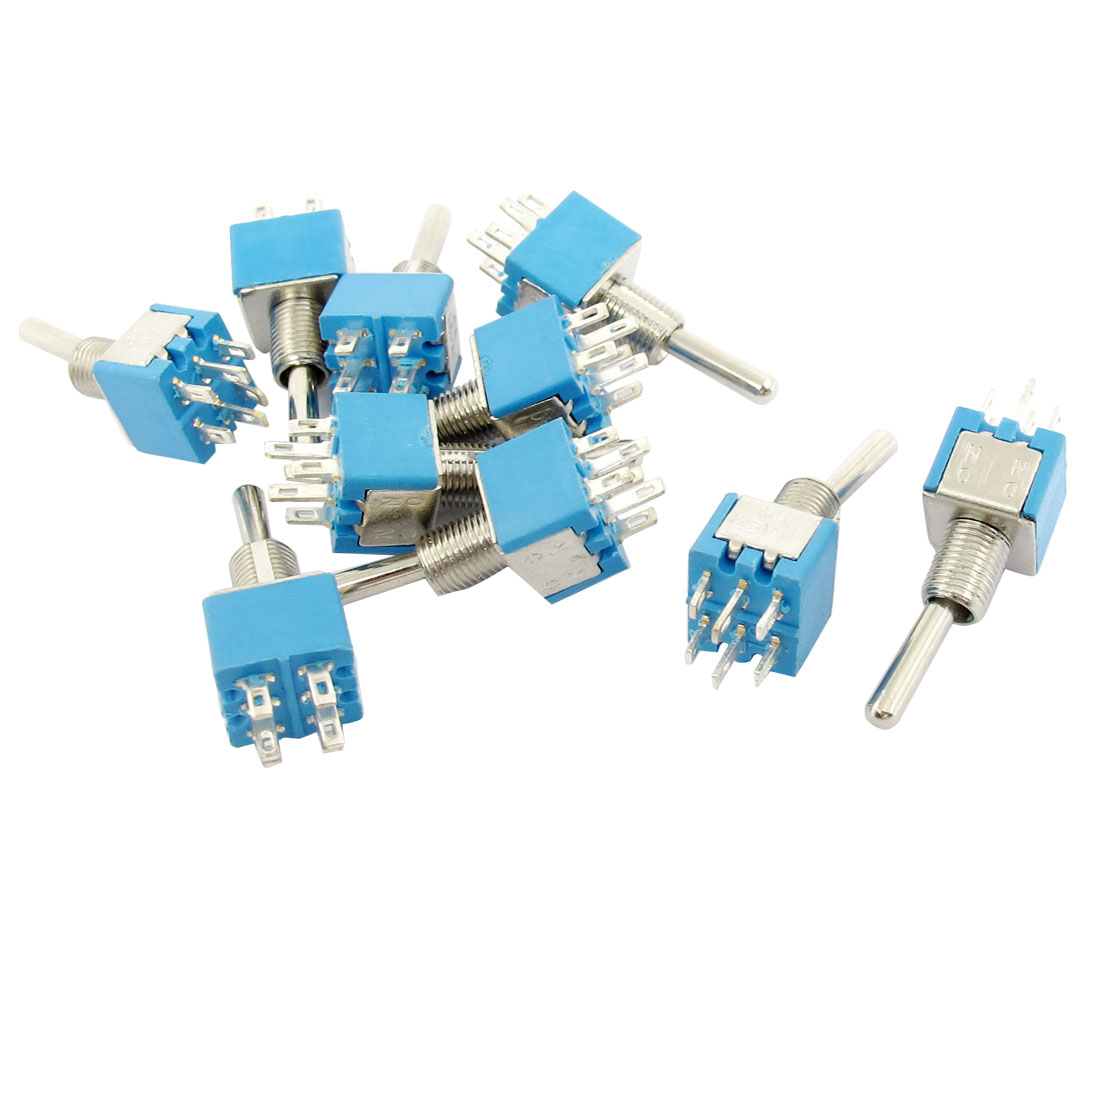 AC 125V 6A DPDT 2 Position ON/ON 6 Pins Latching Rocker Toggle Switch 10 Pcs